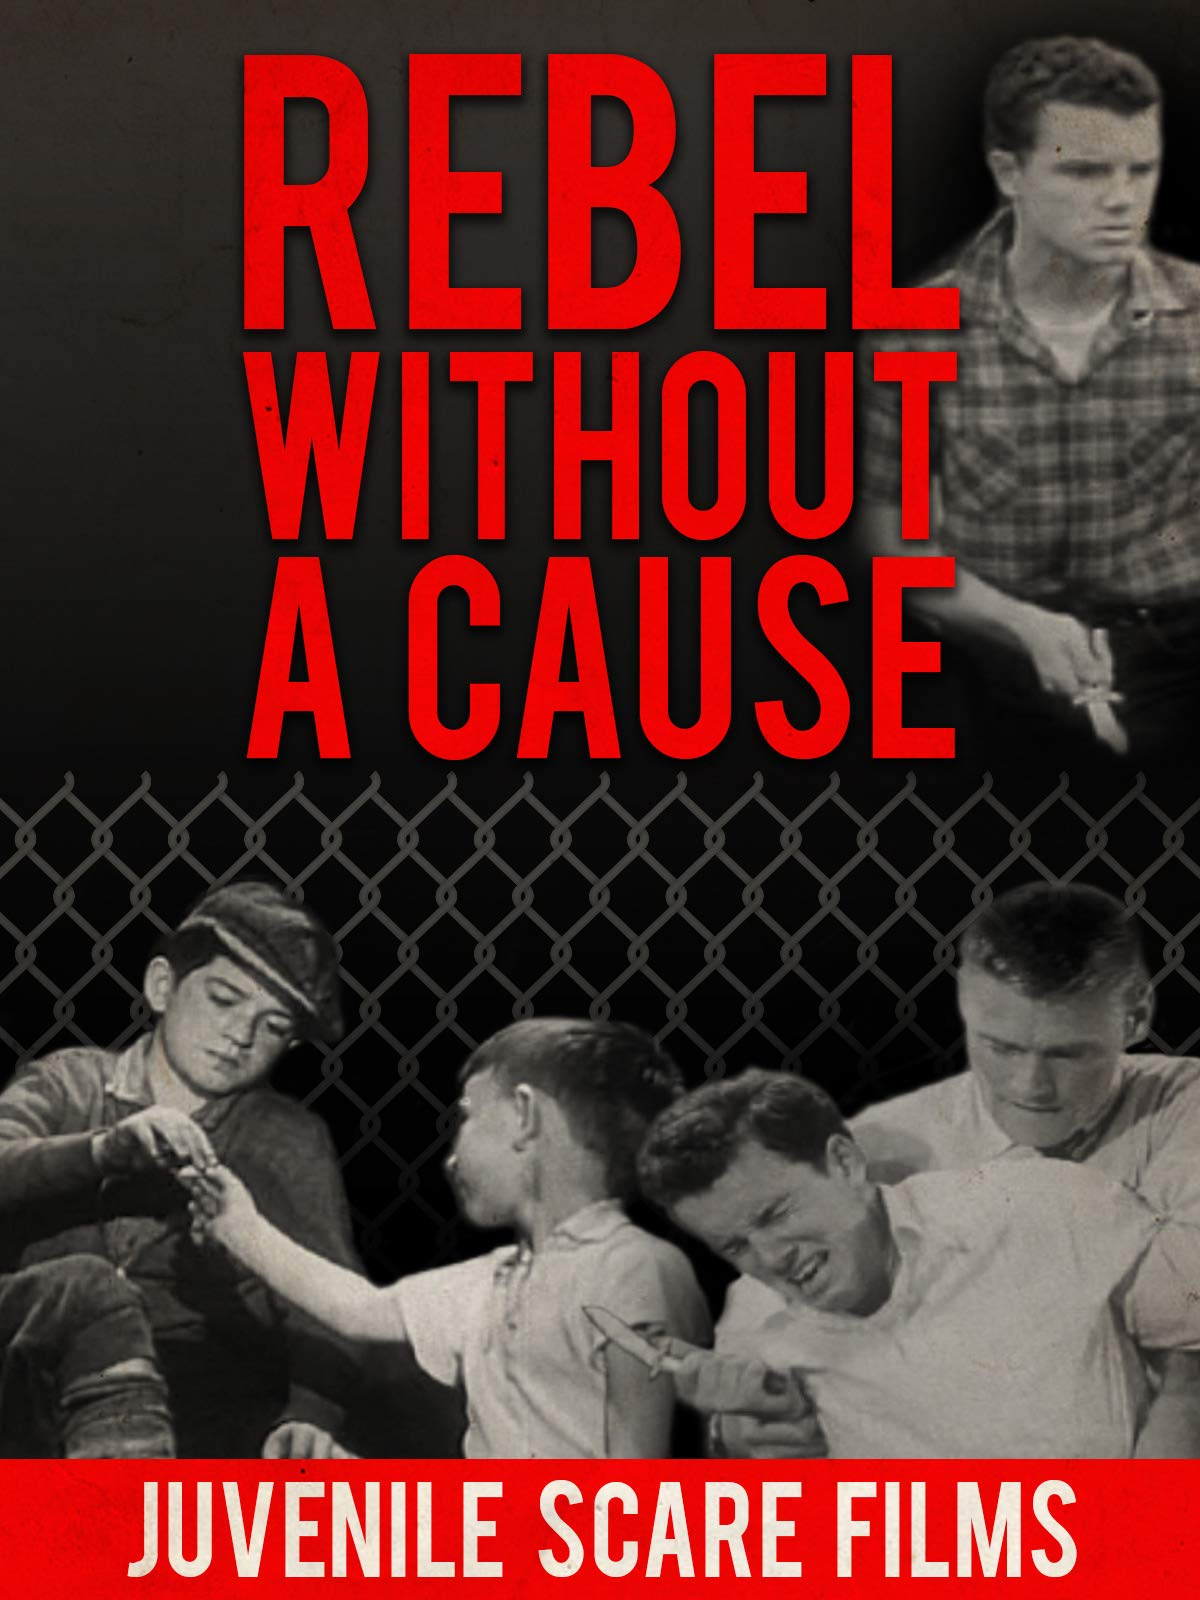 Rebel Without A Cause - Juvenile Scare Films